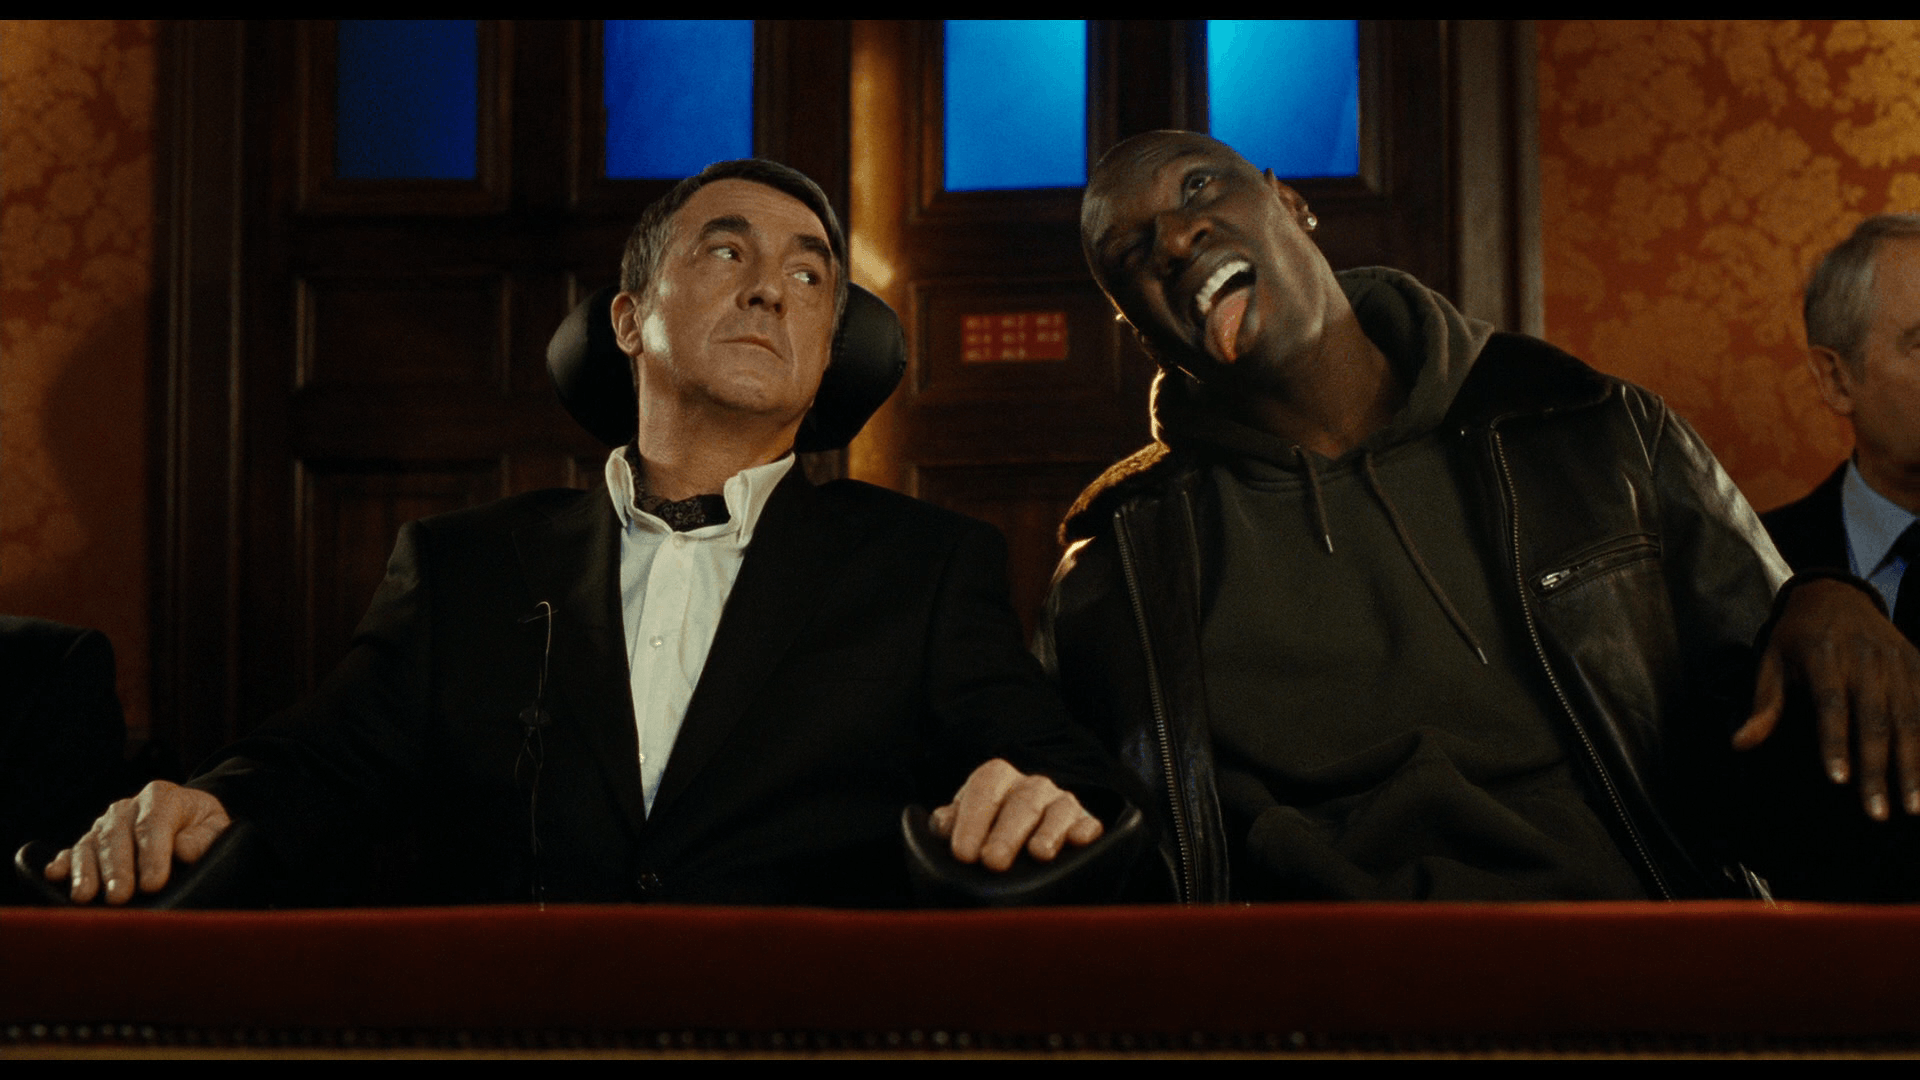 Index of /reviews/image/reviews/1/intouchables